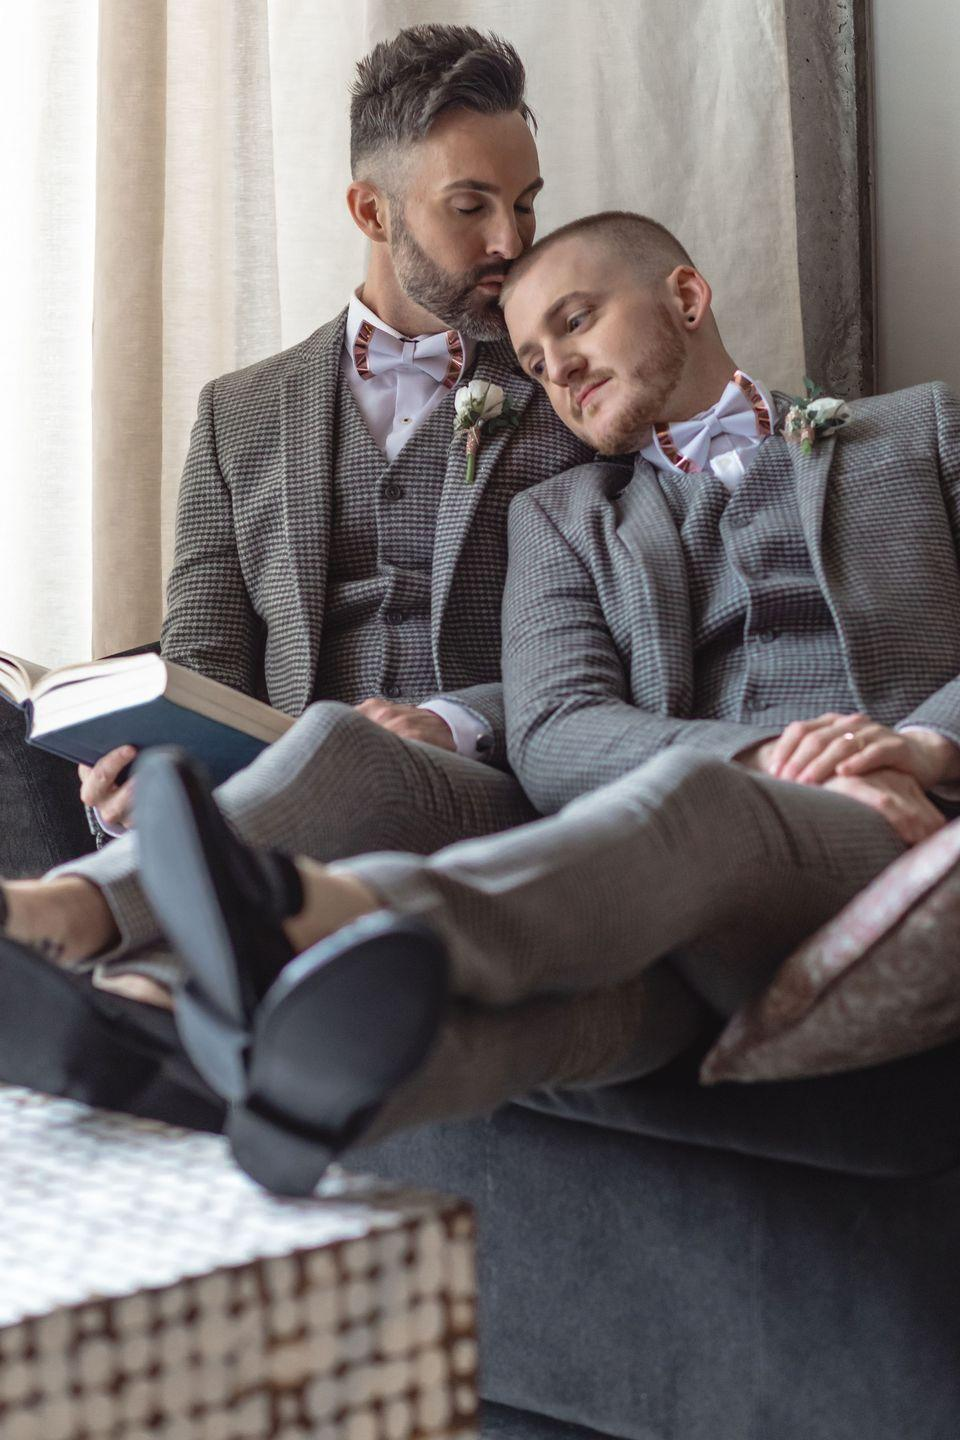 """<p>Nearly 150 close friends and family gathered at The Nylo Hotel in Las Colinas, TX on February 19, 2019 to celebrate Brad and David. """"It was beyond perfect. There wasn't a dry eye at the ceremony or a set of feet that didn't hurt from dancing the night away at the reception,"""" they said.<br></p>"""